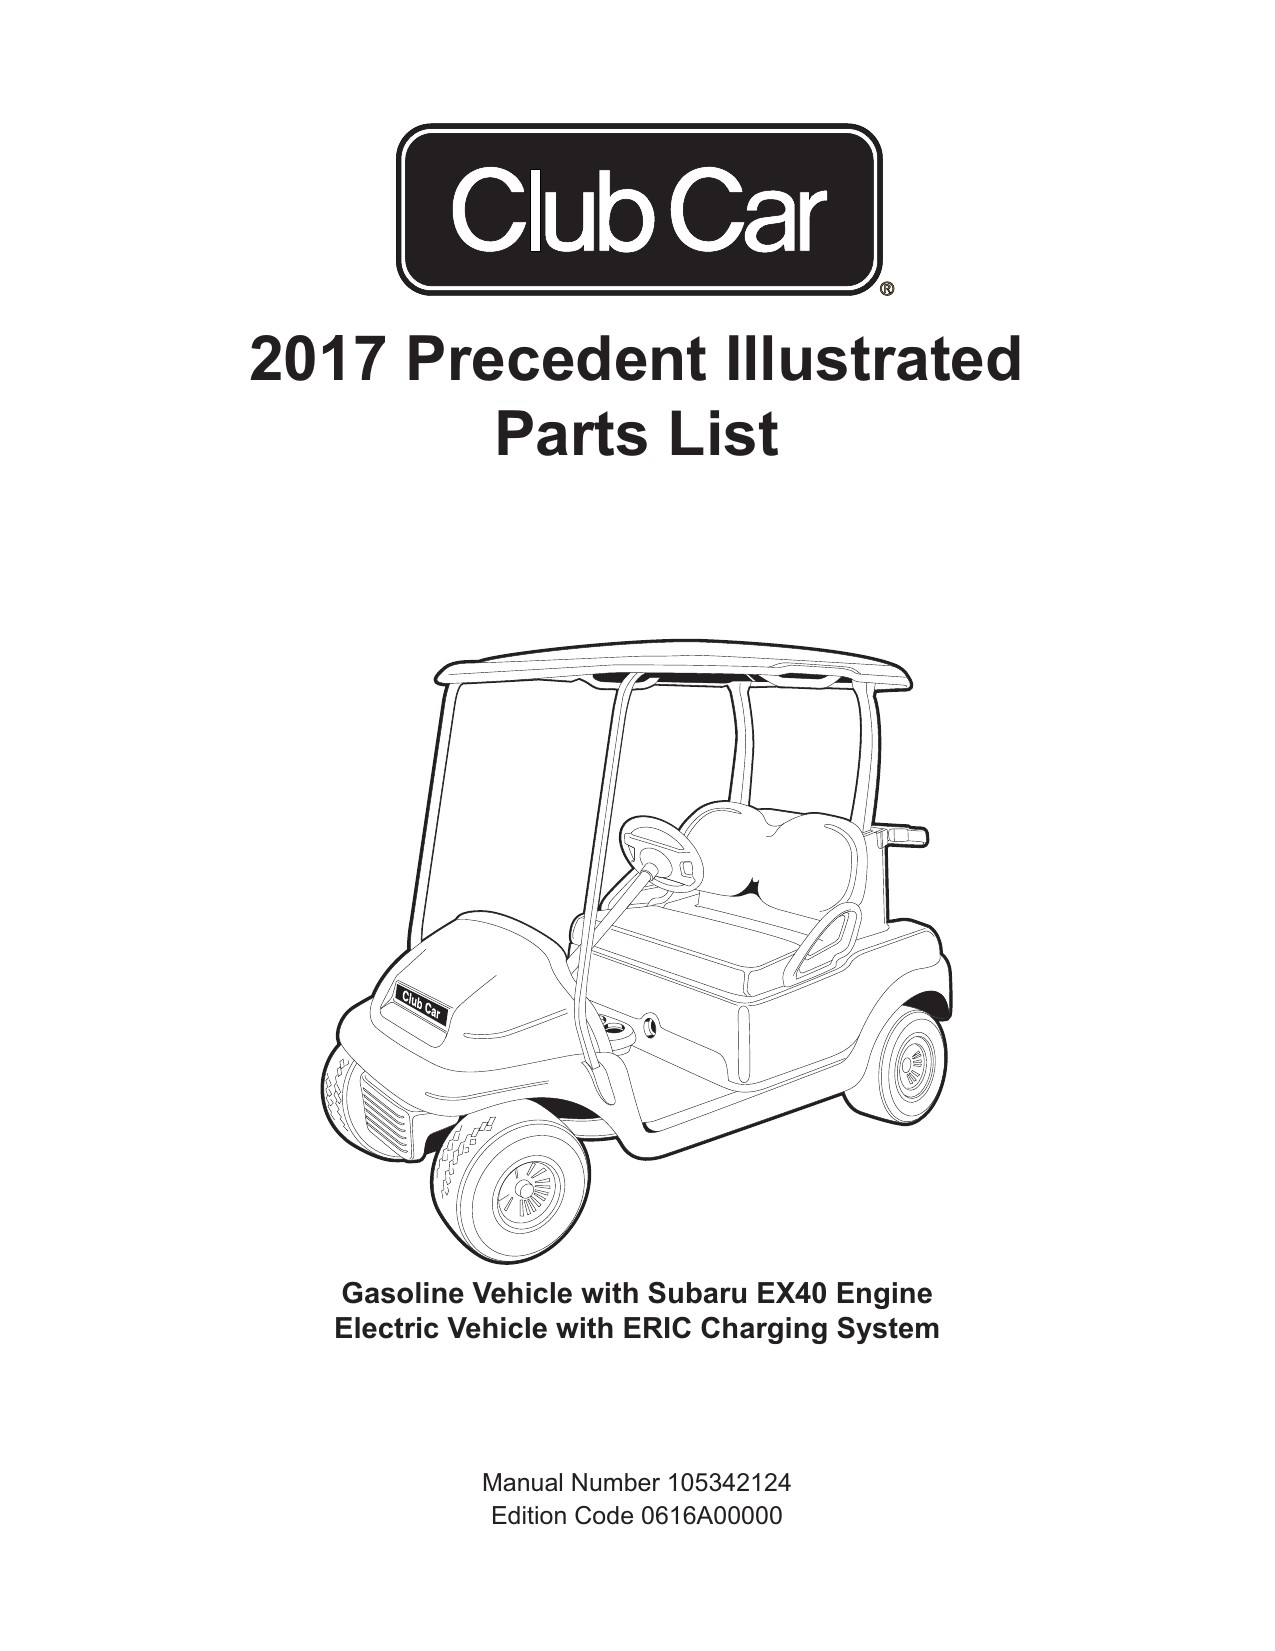 Forward Reverse Switch On Club Car 2017 Precedent Illustrated Parts List Of Forward Reverse Switch On Club Car